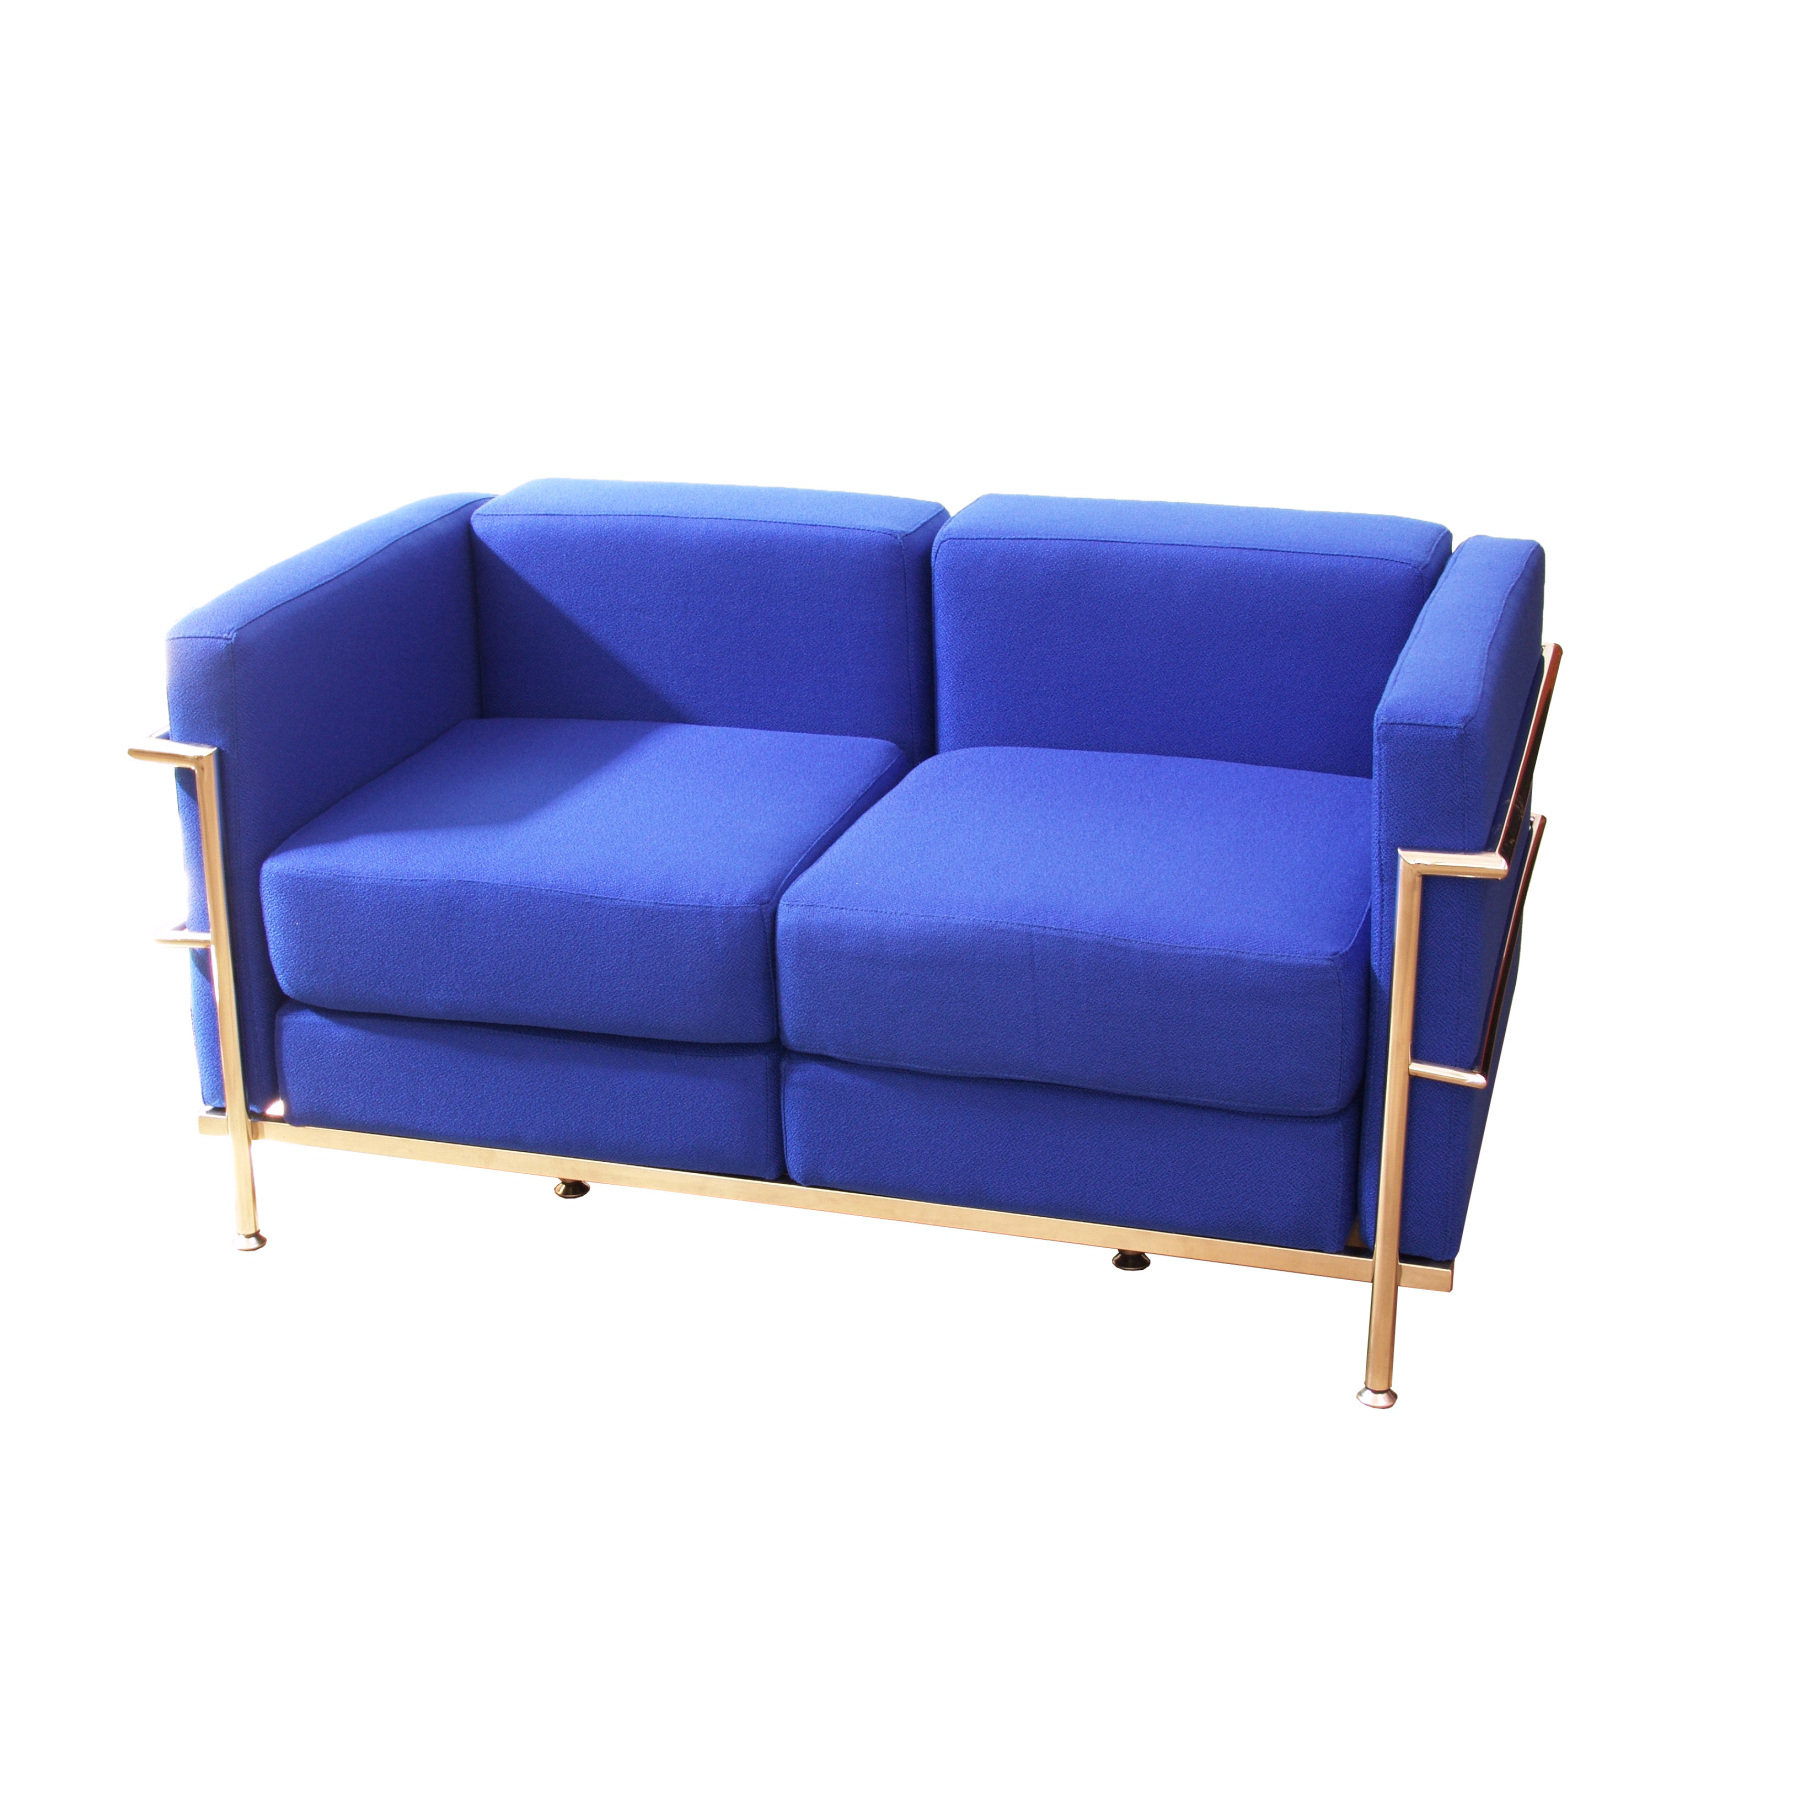 Sofa De Modulo/waiting Two Seater Upholstered In BALI Tissue Color Blue TAPHOLE AND CURLED Model Tarazona